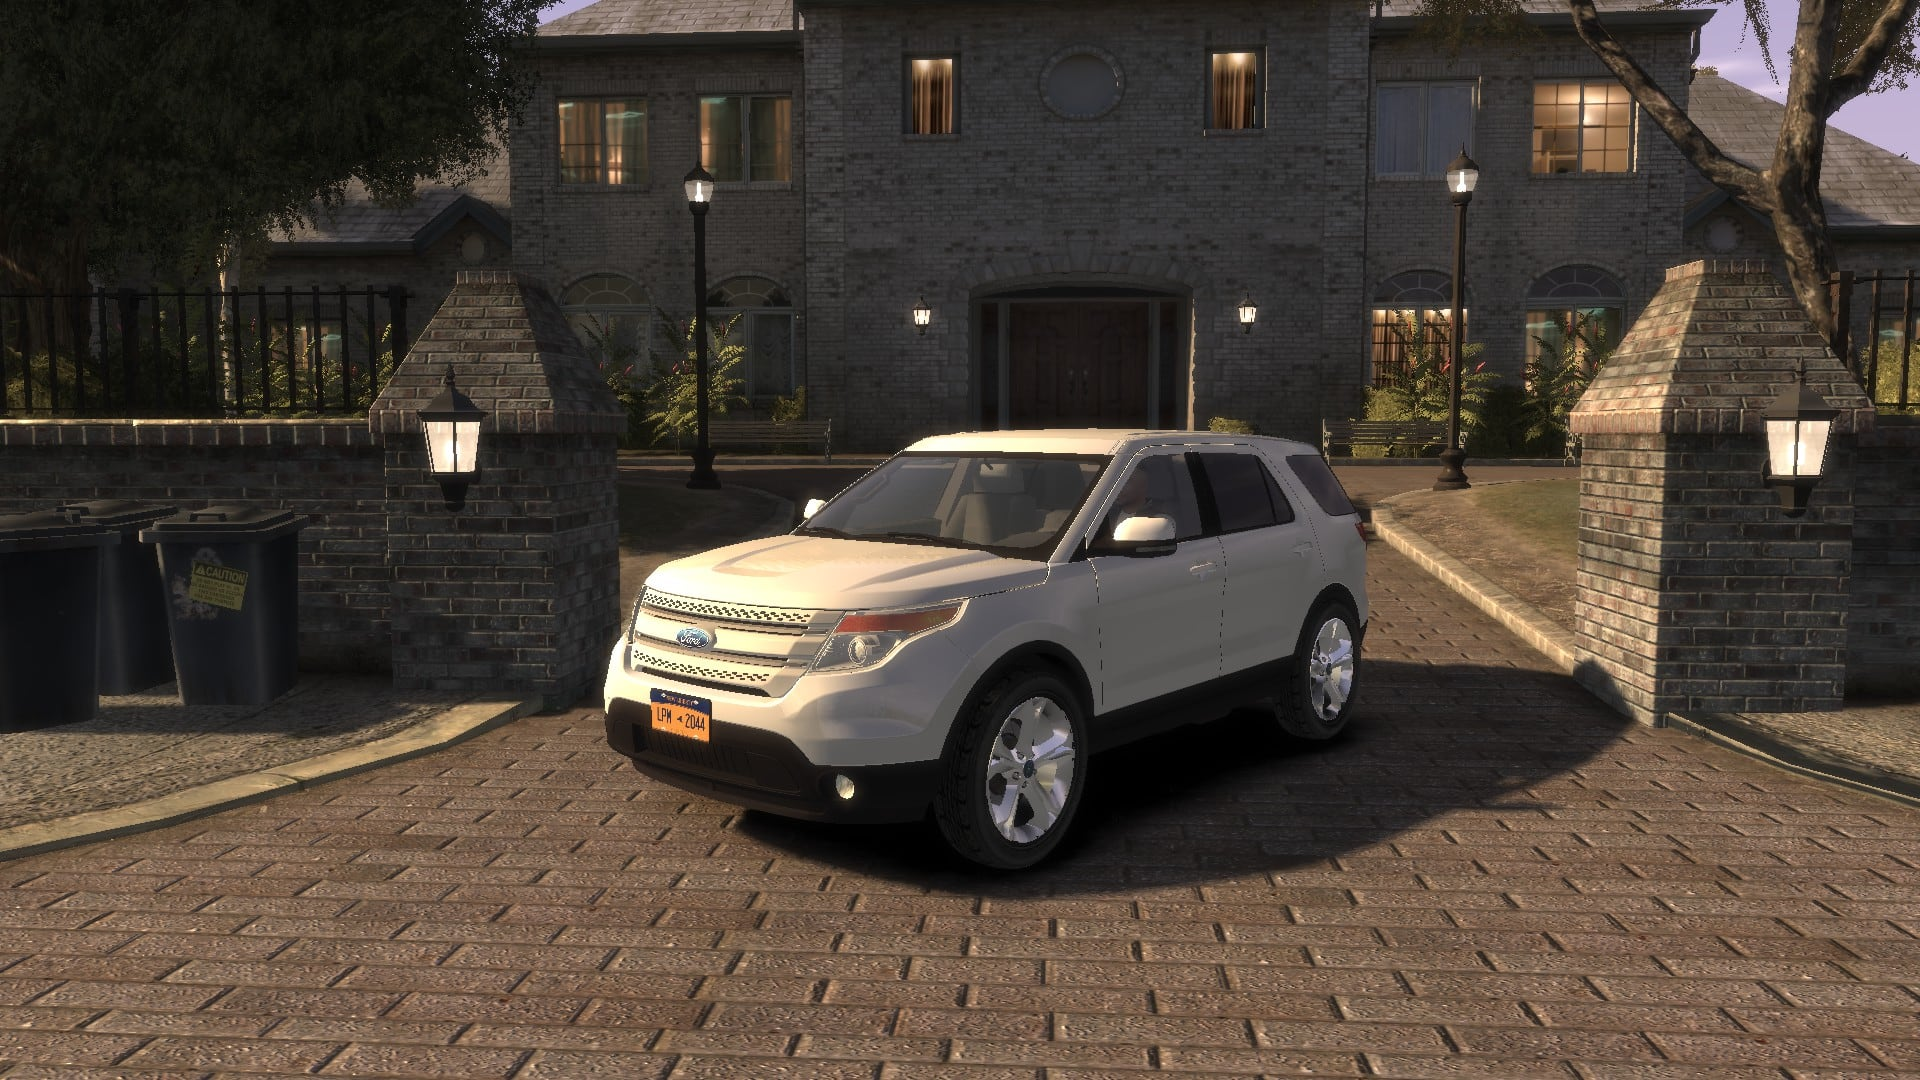 2011 Ford Explorer Mod for GTA IV